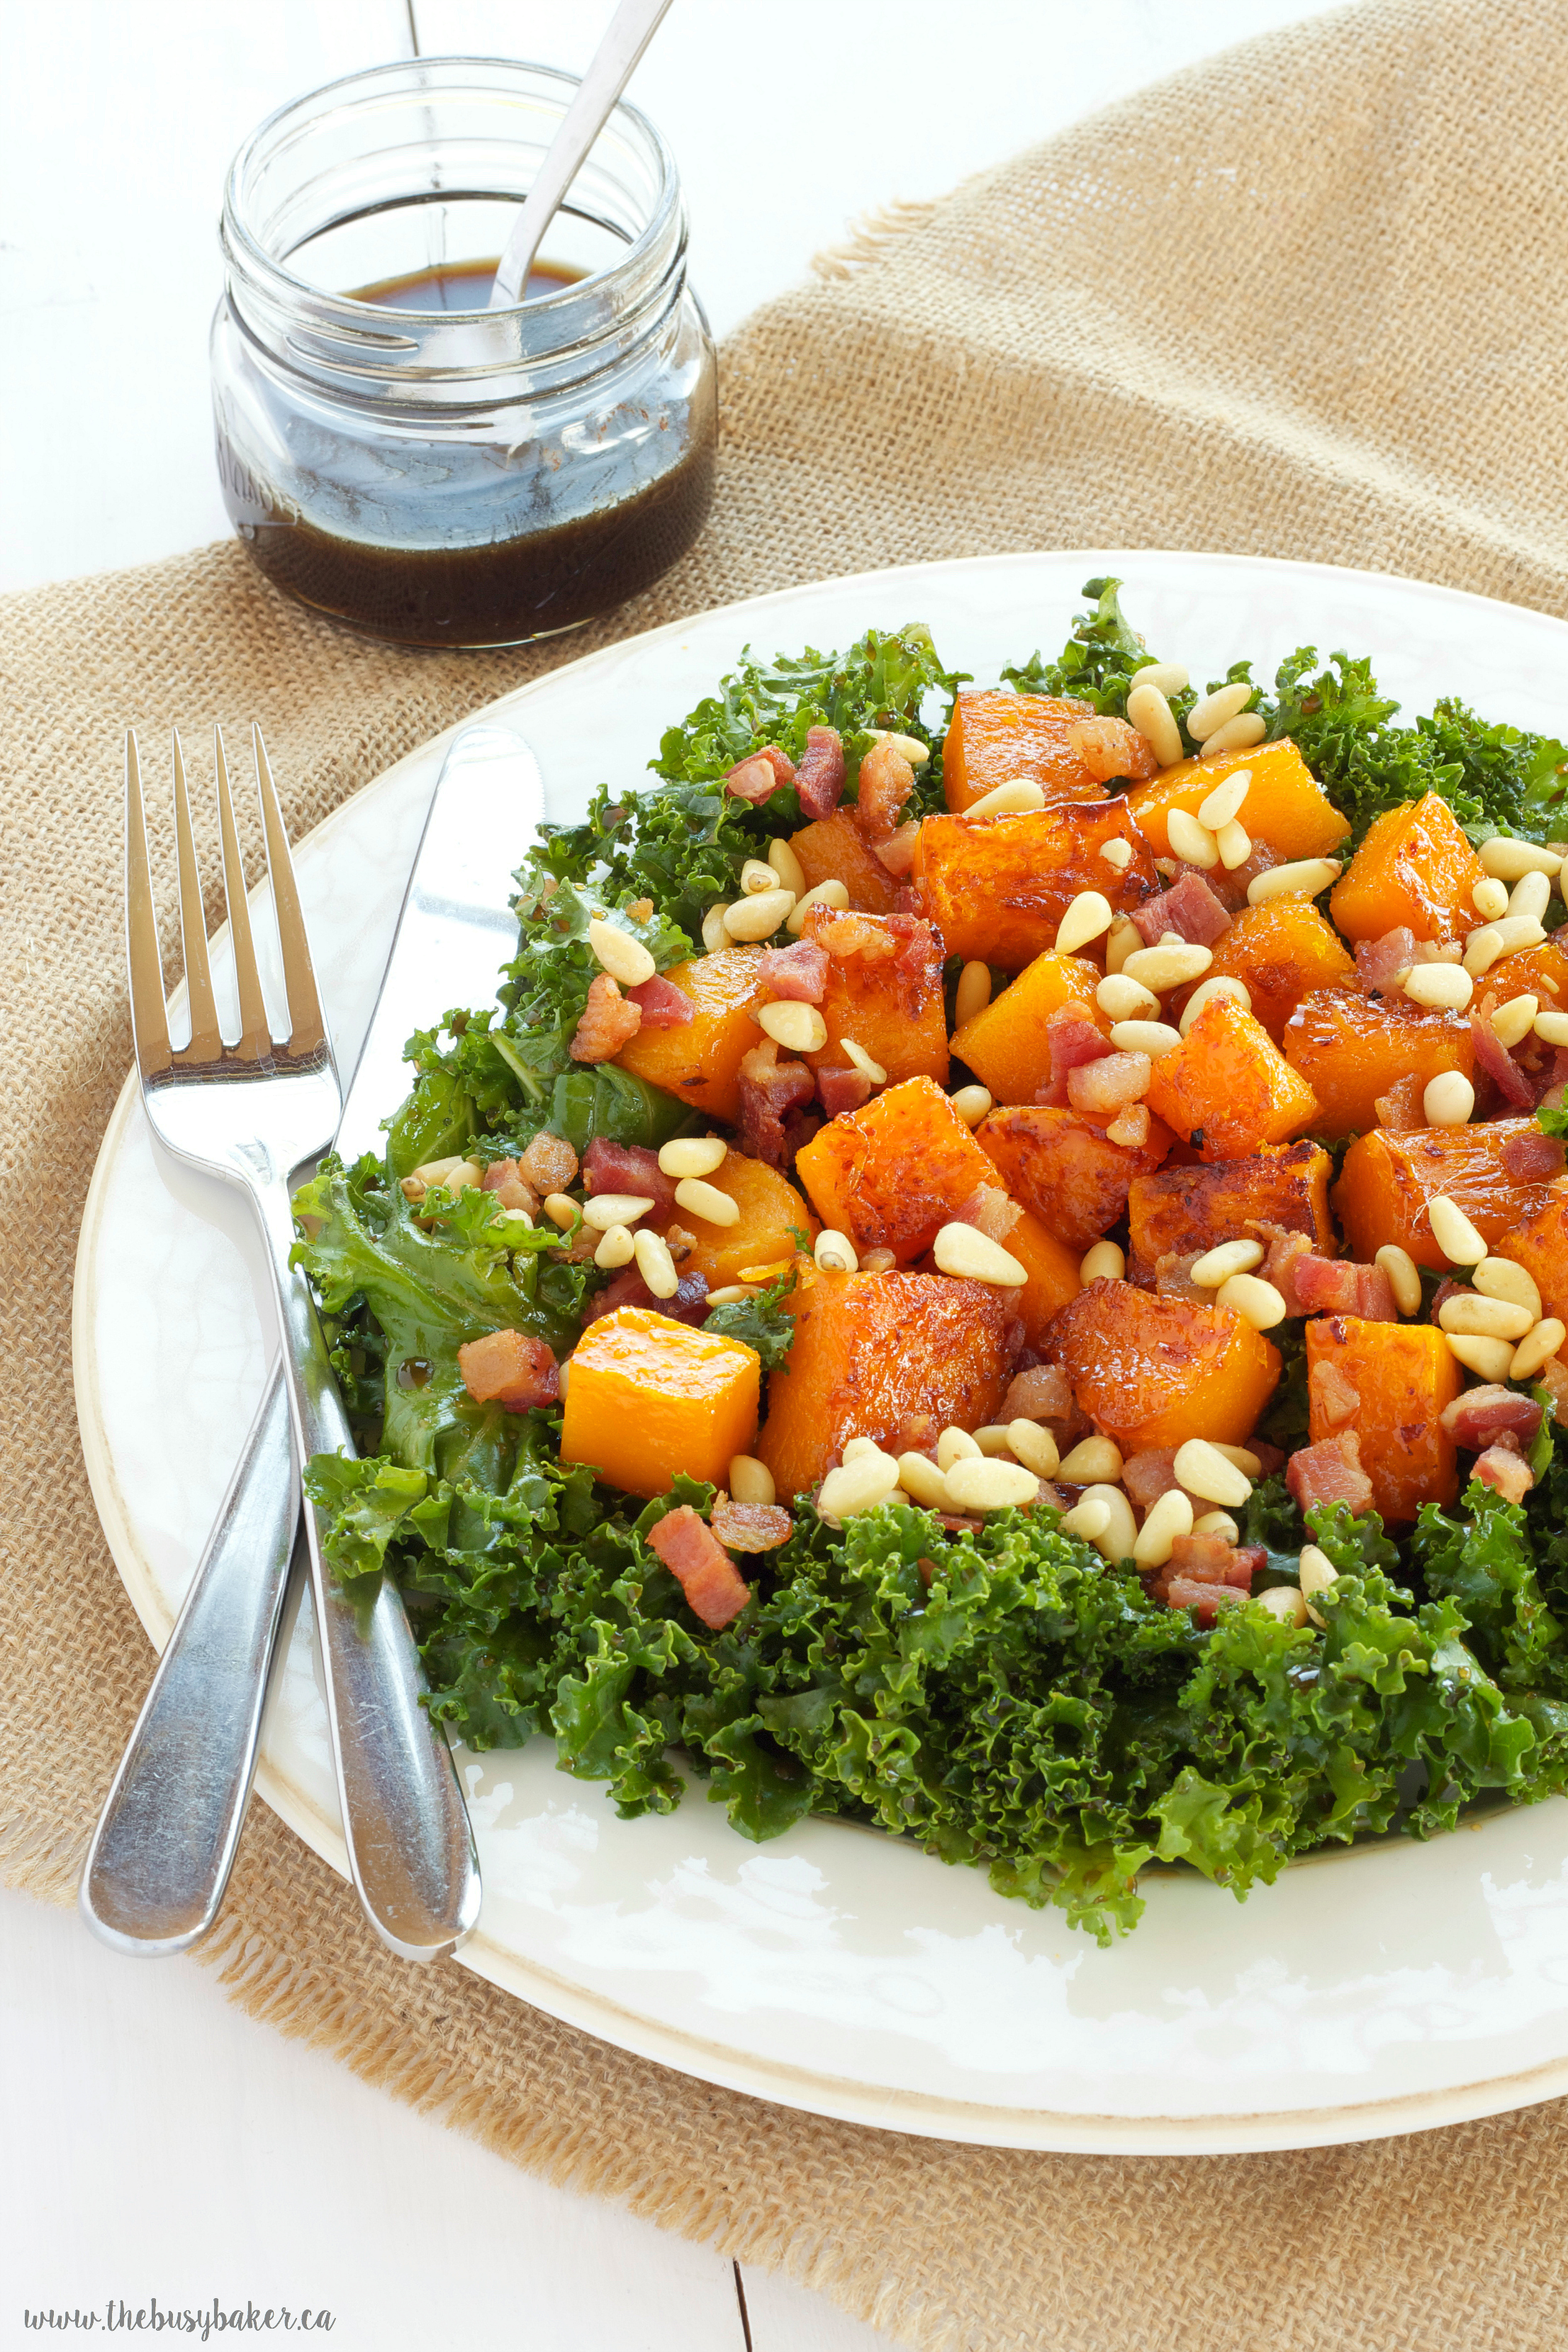 Warm Kale and Butternut Squash Salad with Bancetta